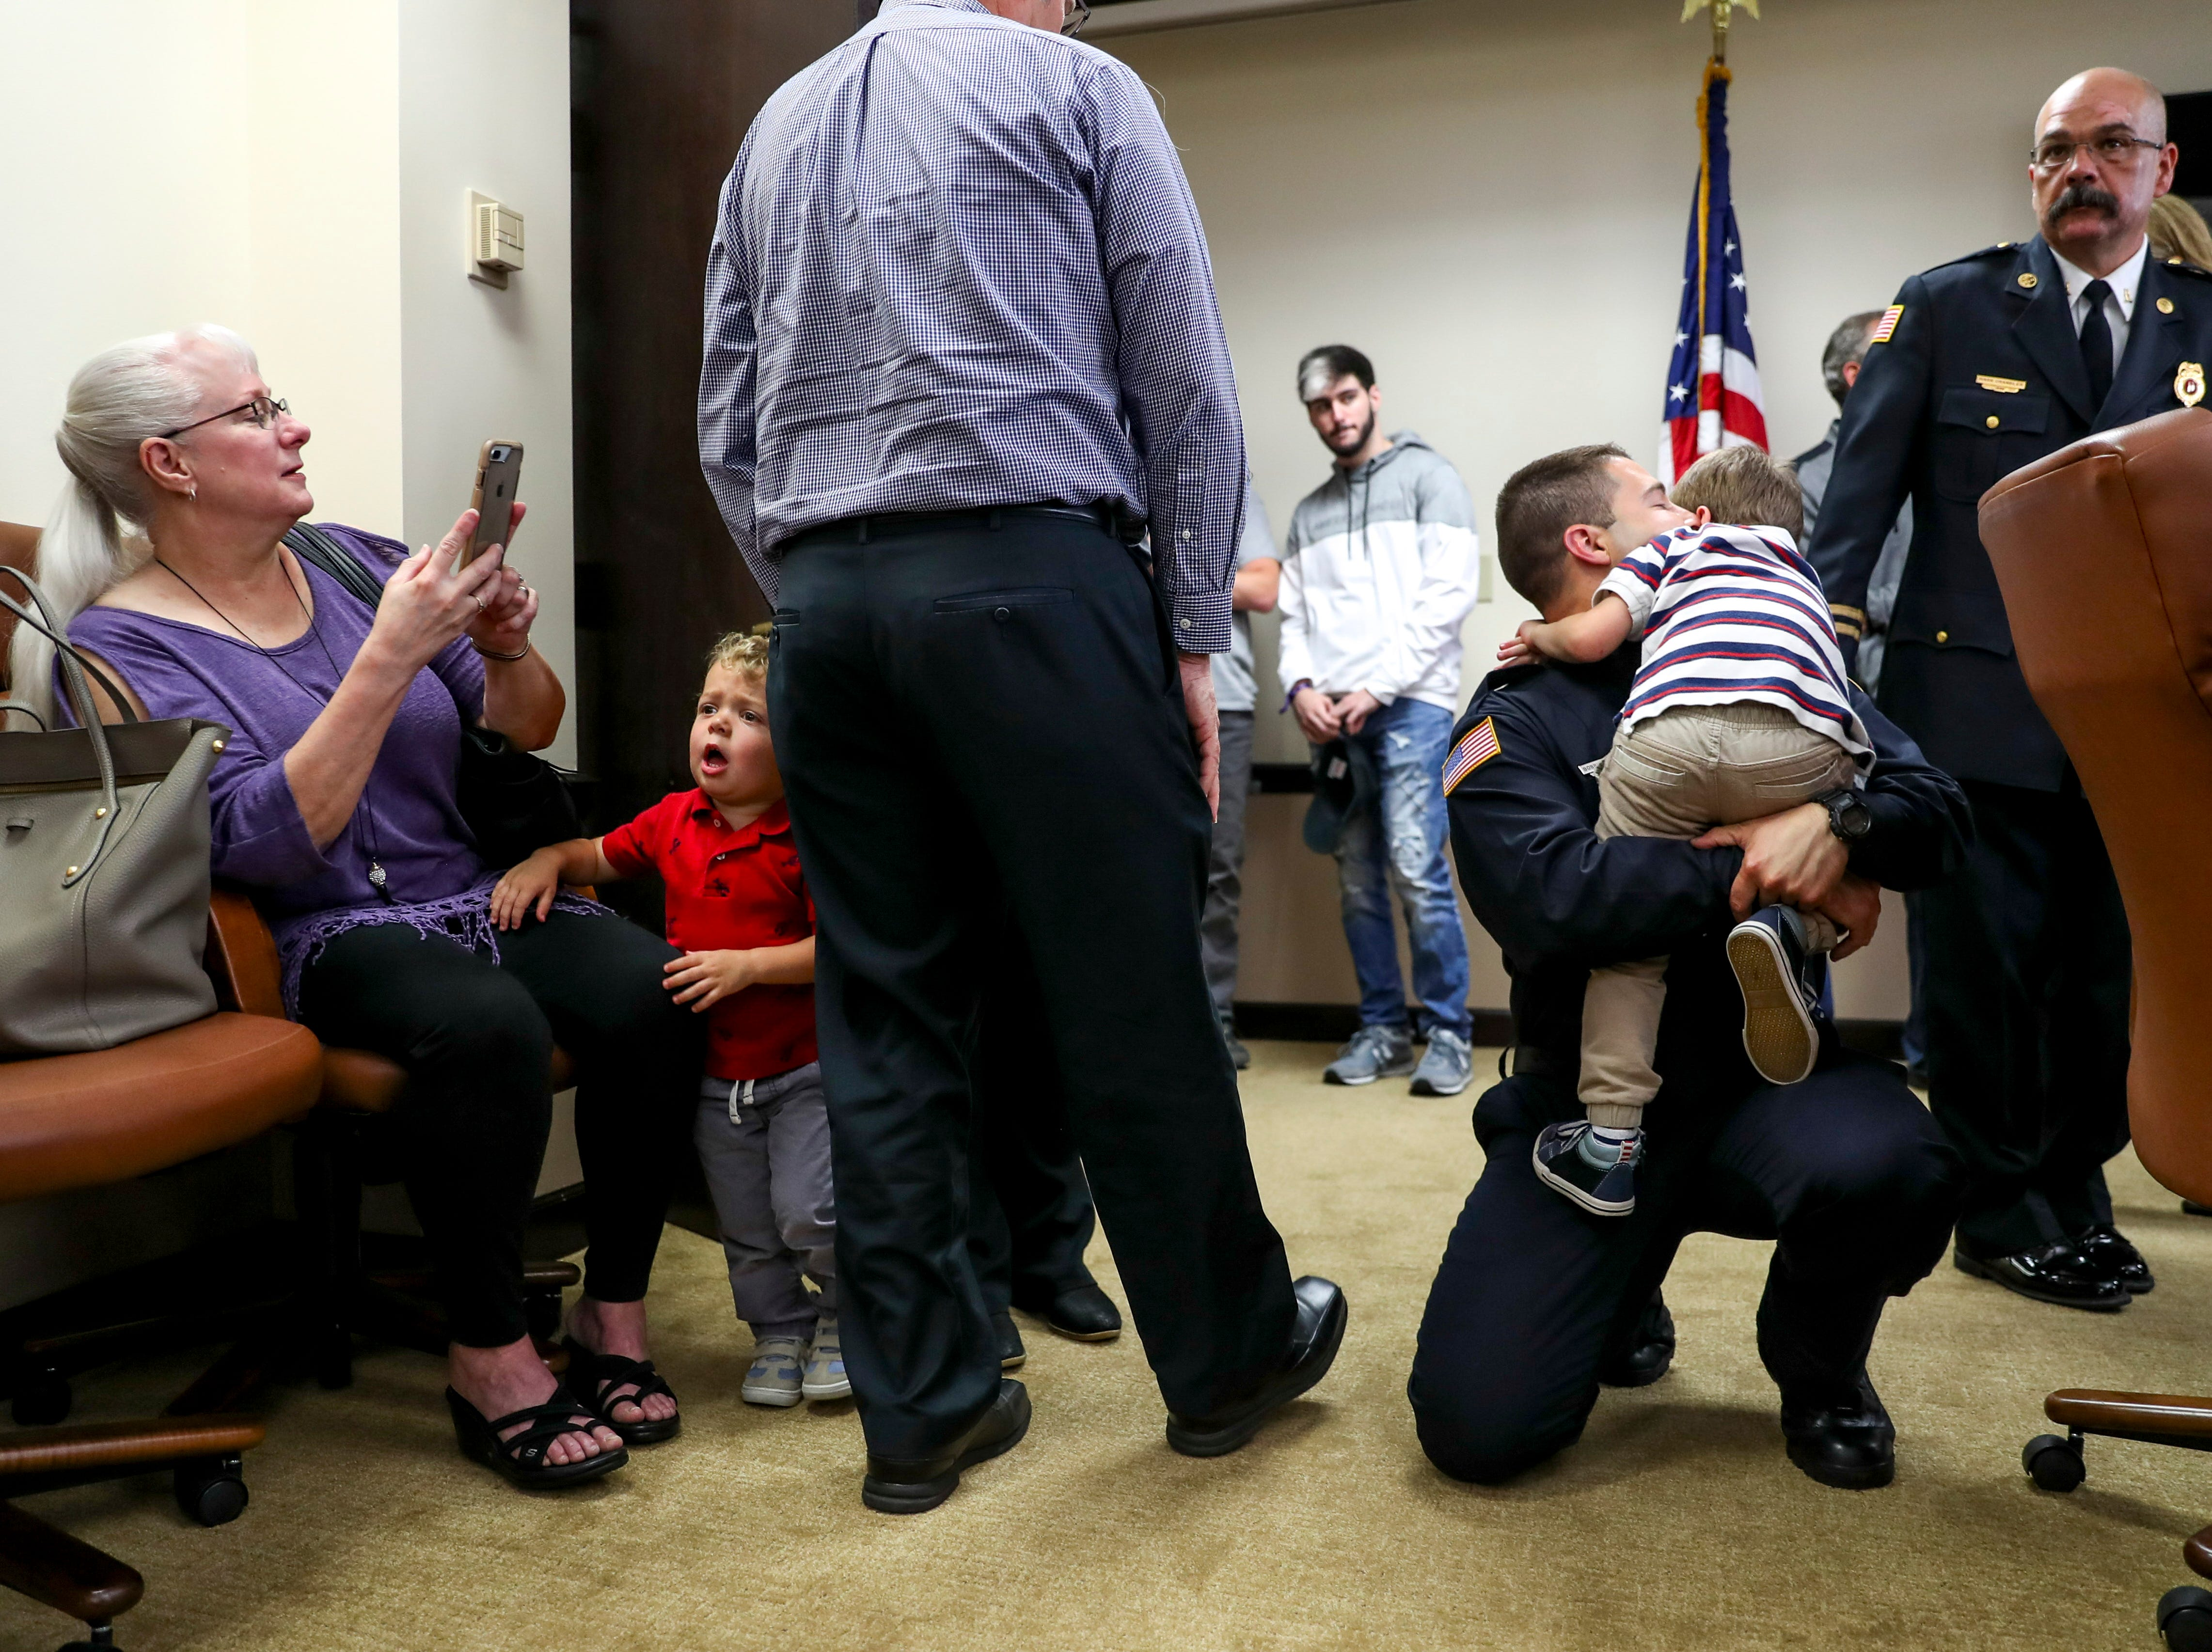 Bobby Melanson, right, hugs his son Caleb, 5, after being sworn in at Clarksville City Hall on Friday, May 10, 2019.